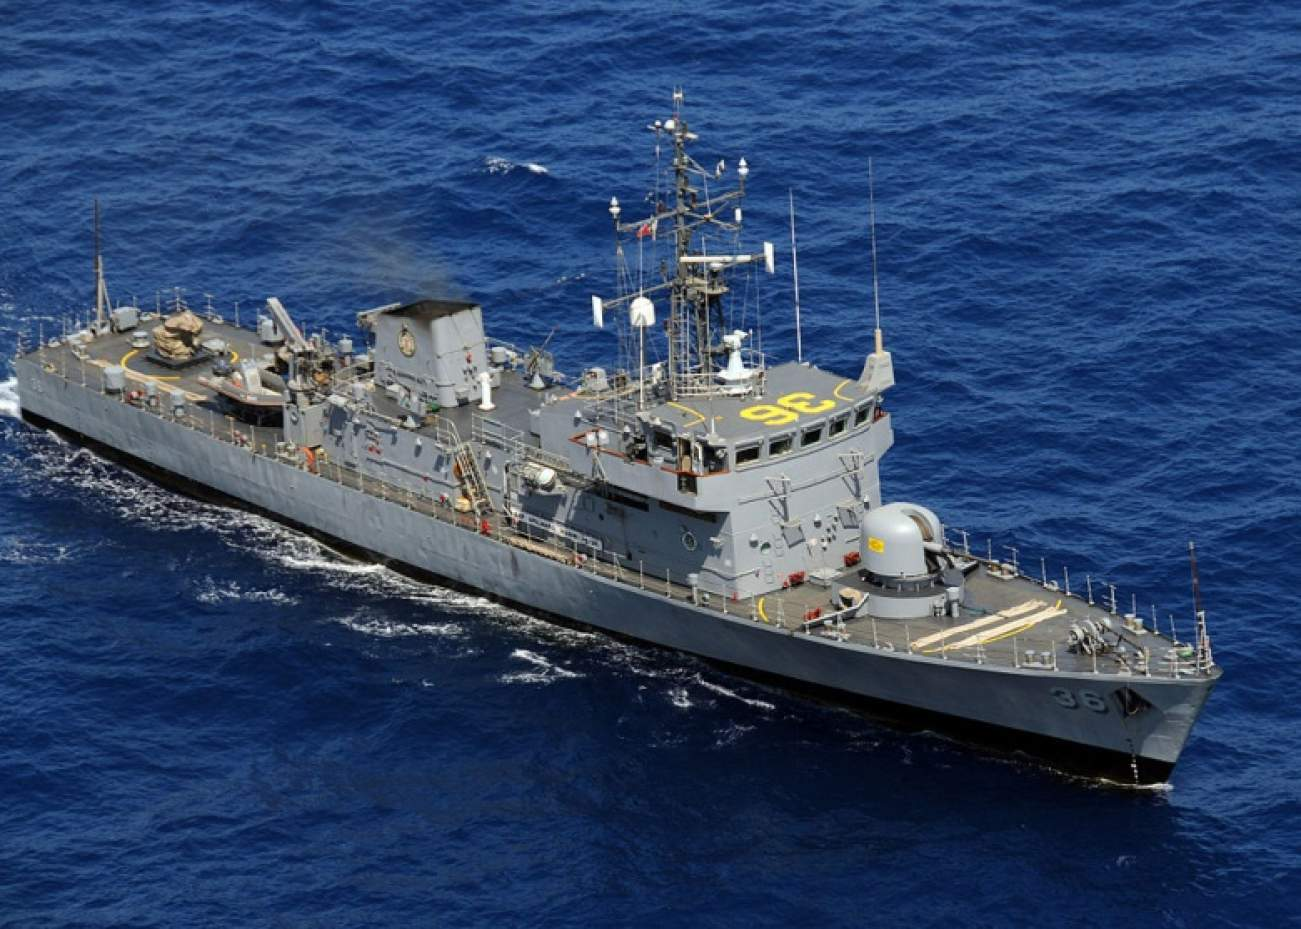 The Philippine Navys Long Struggle To Modernize The National Interest